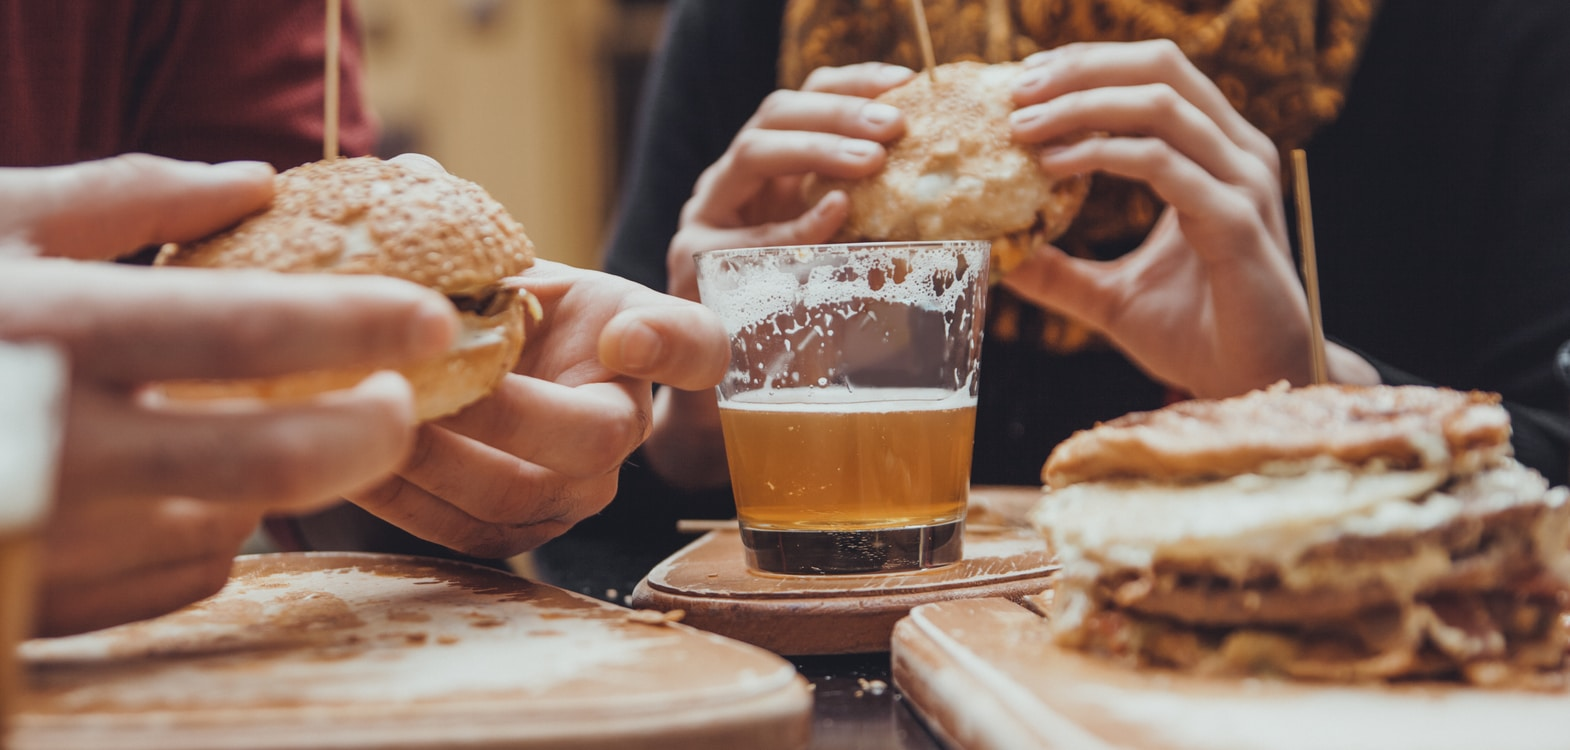 People holding burgers served on wooden chopping boards with a glass of beer in the centre